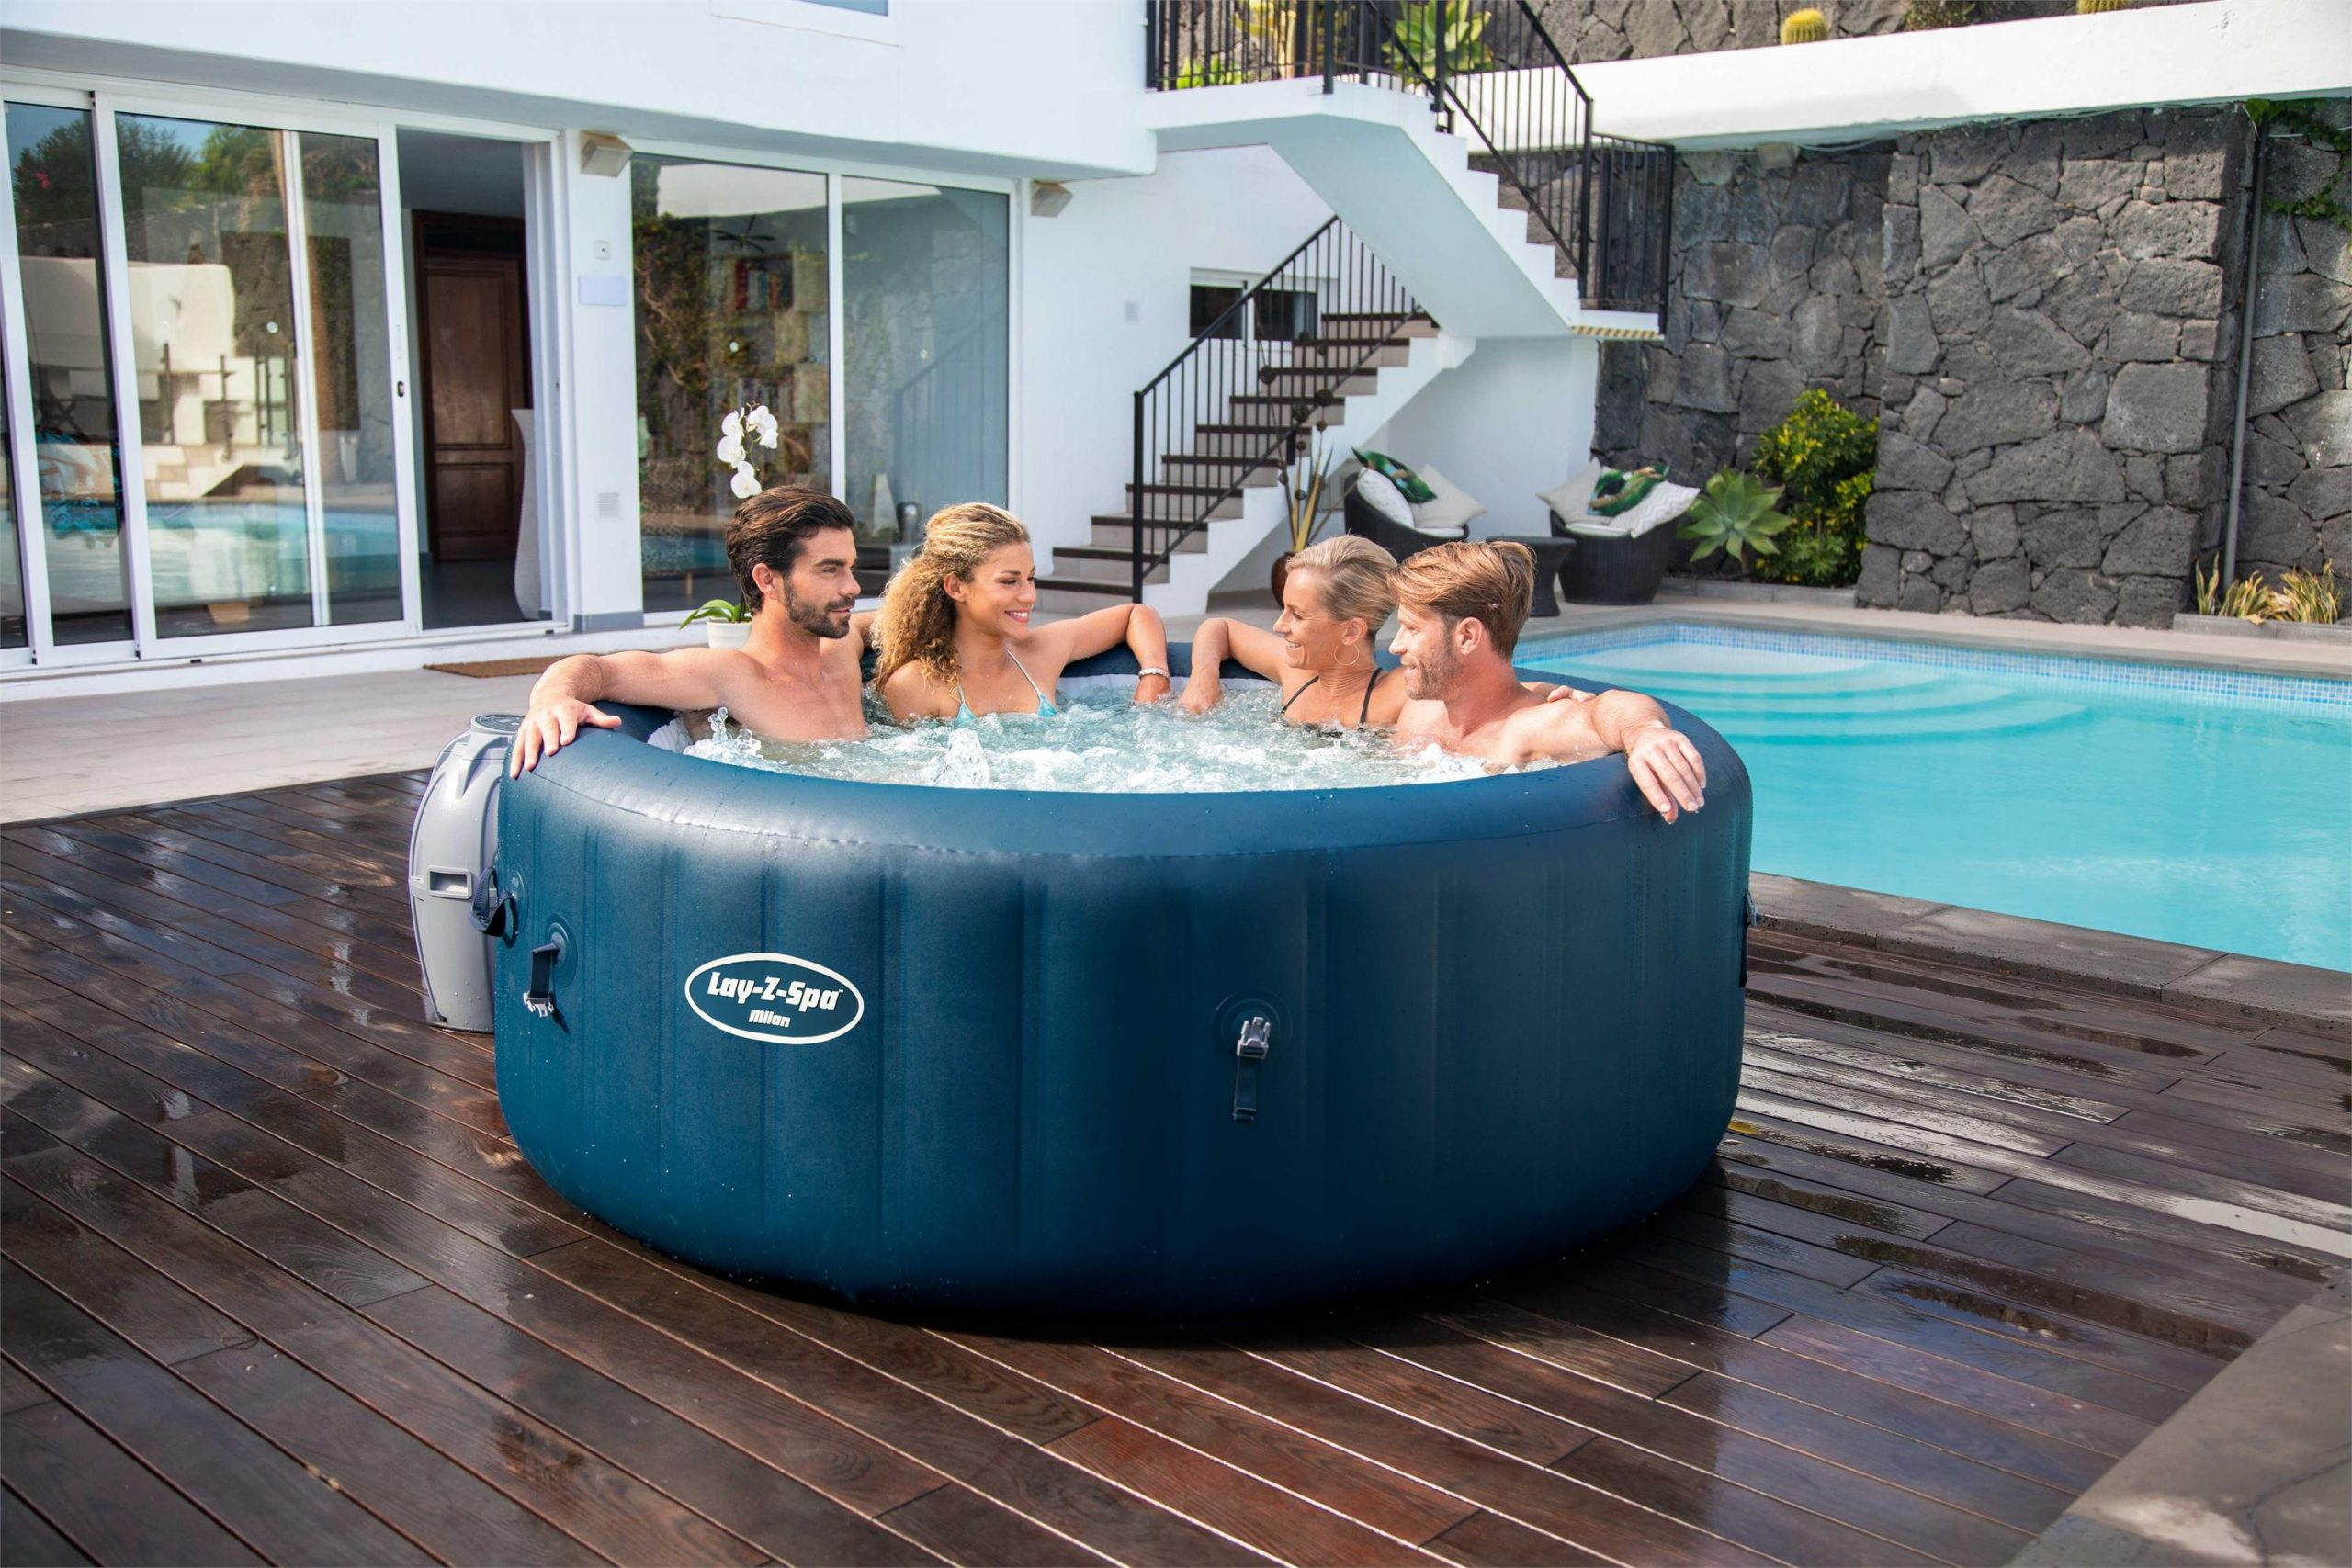 Lay-Z-Spa Milan AirJet Plus hot tub feature image